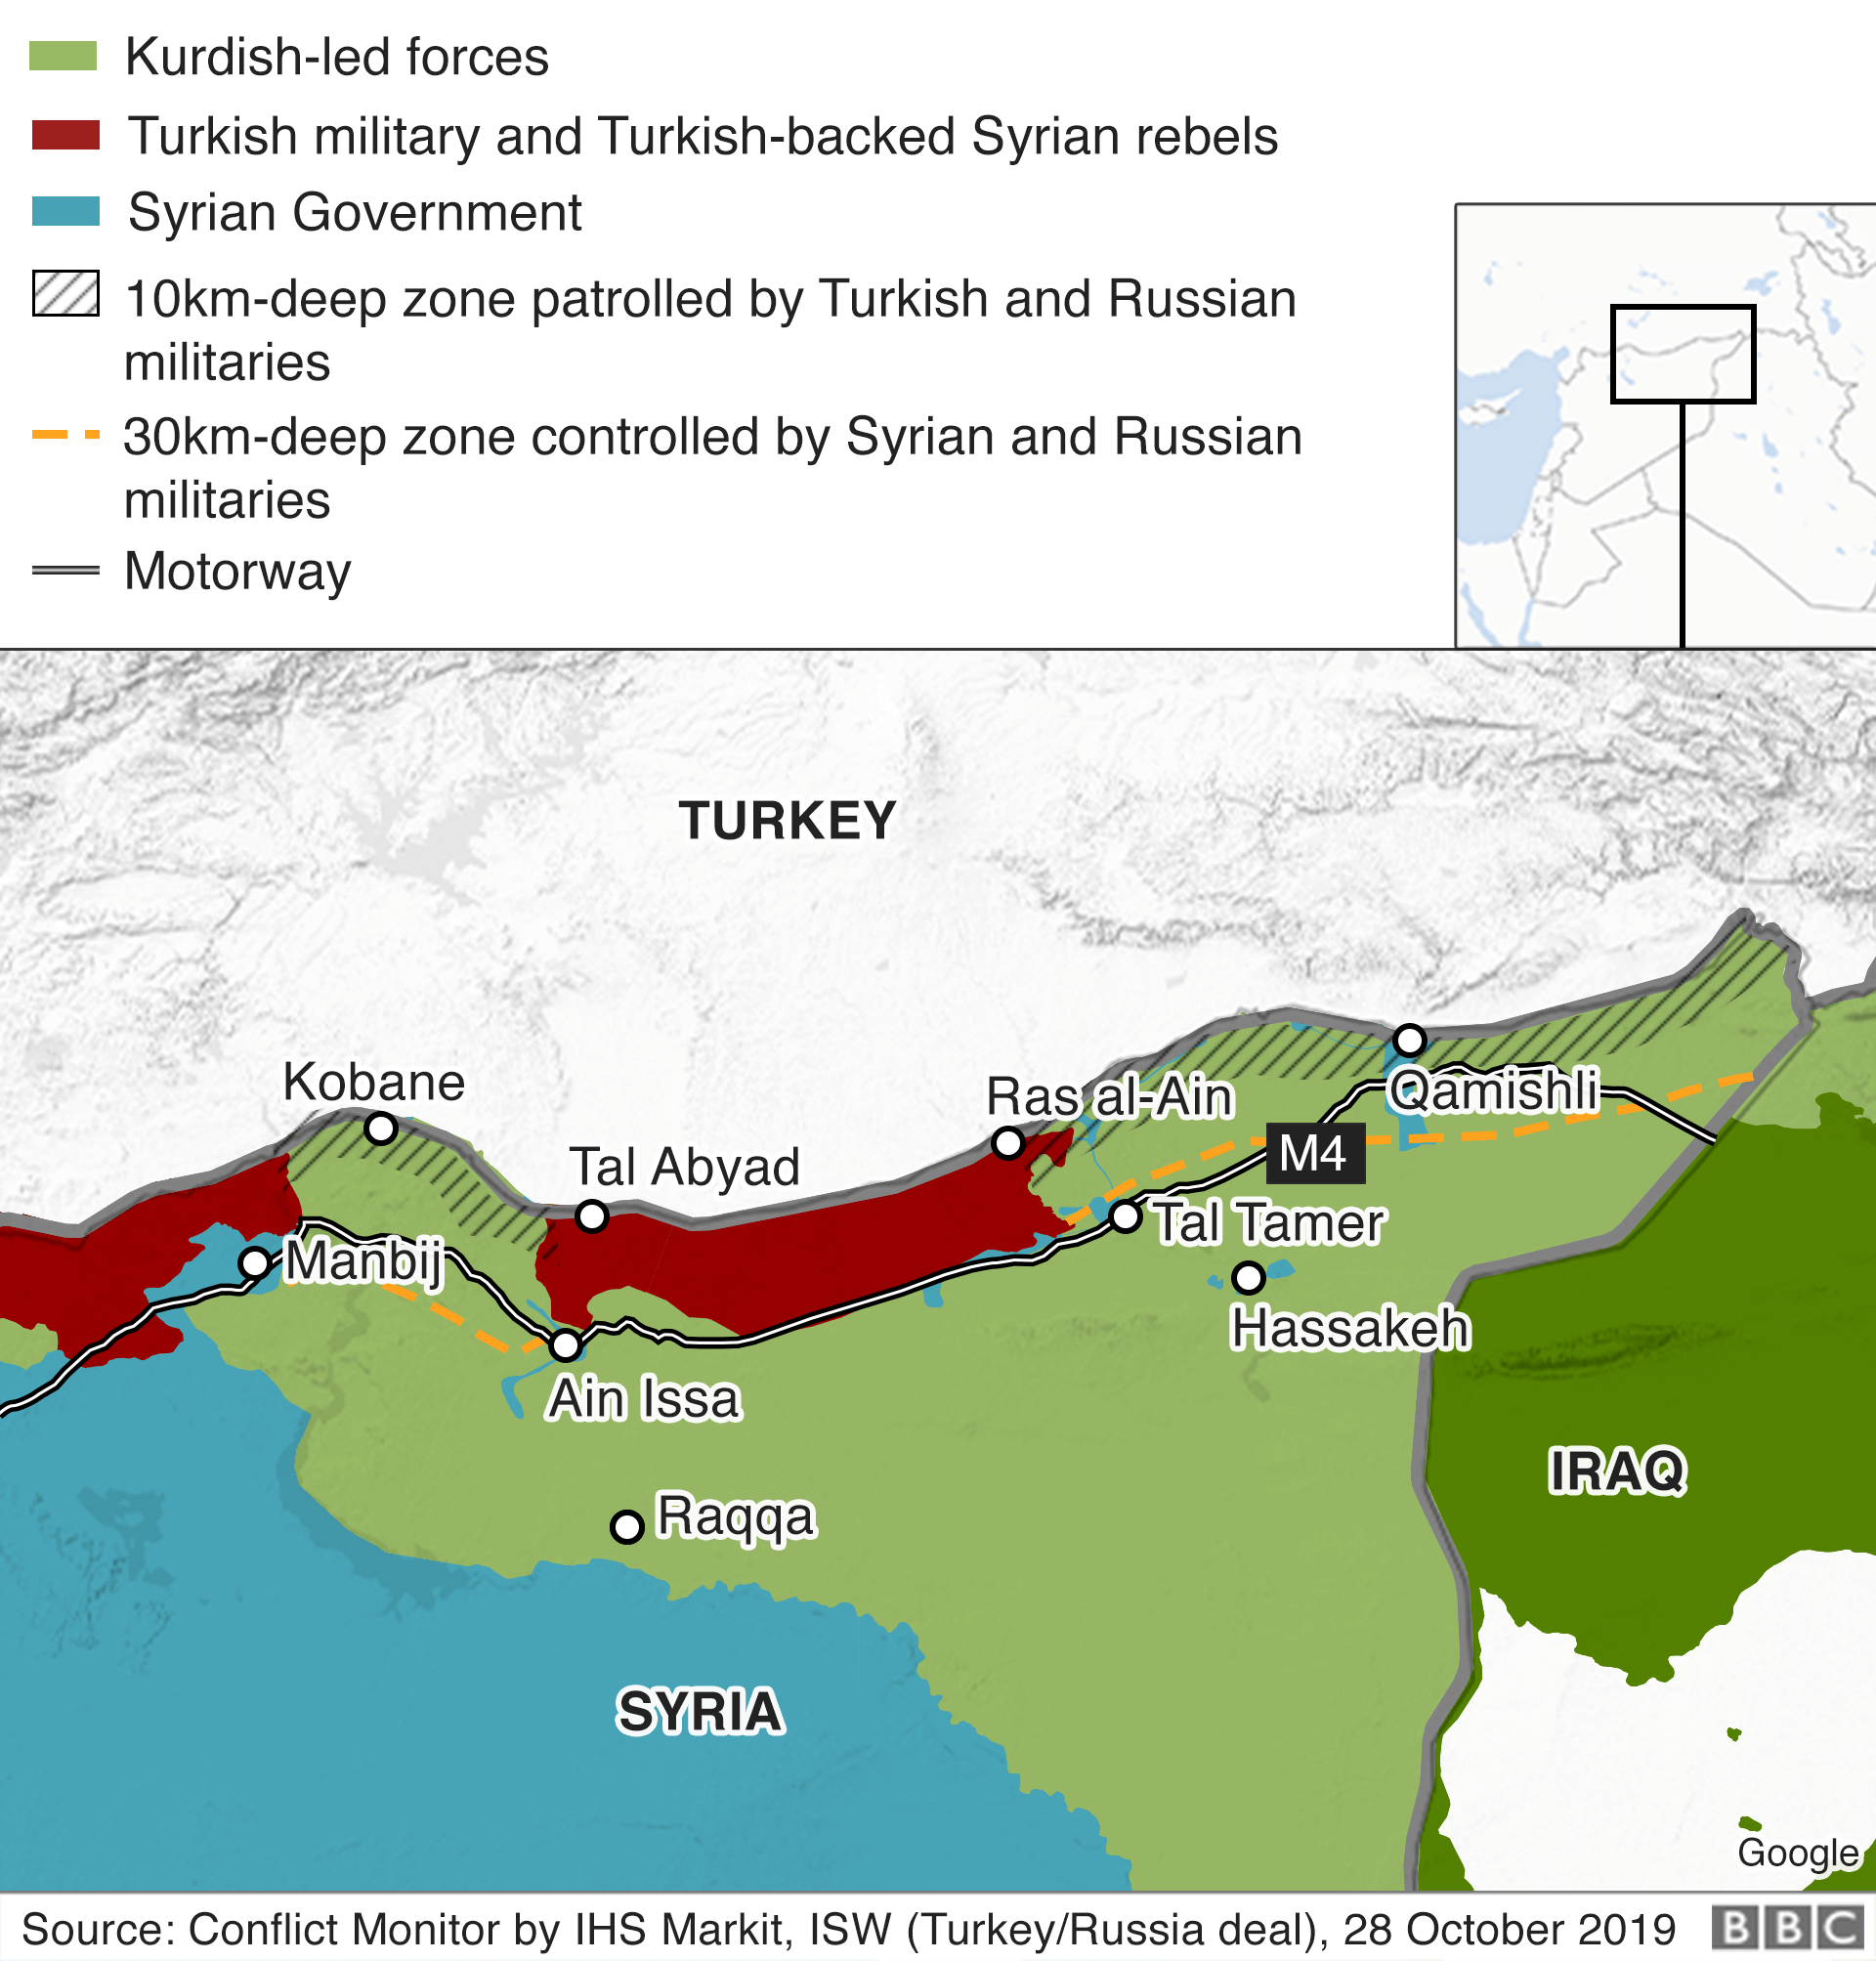 Map of territorial control in north-east Syria